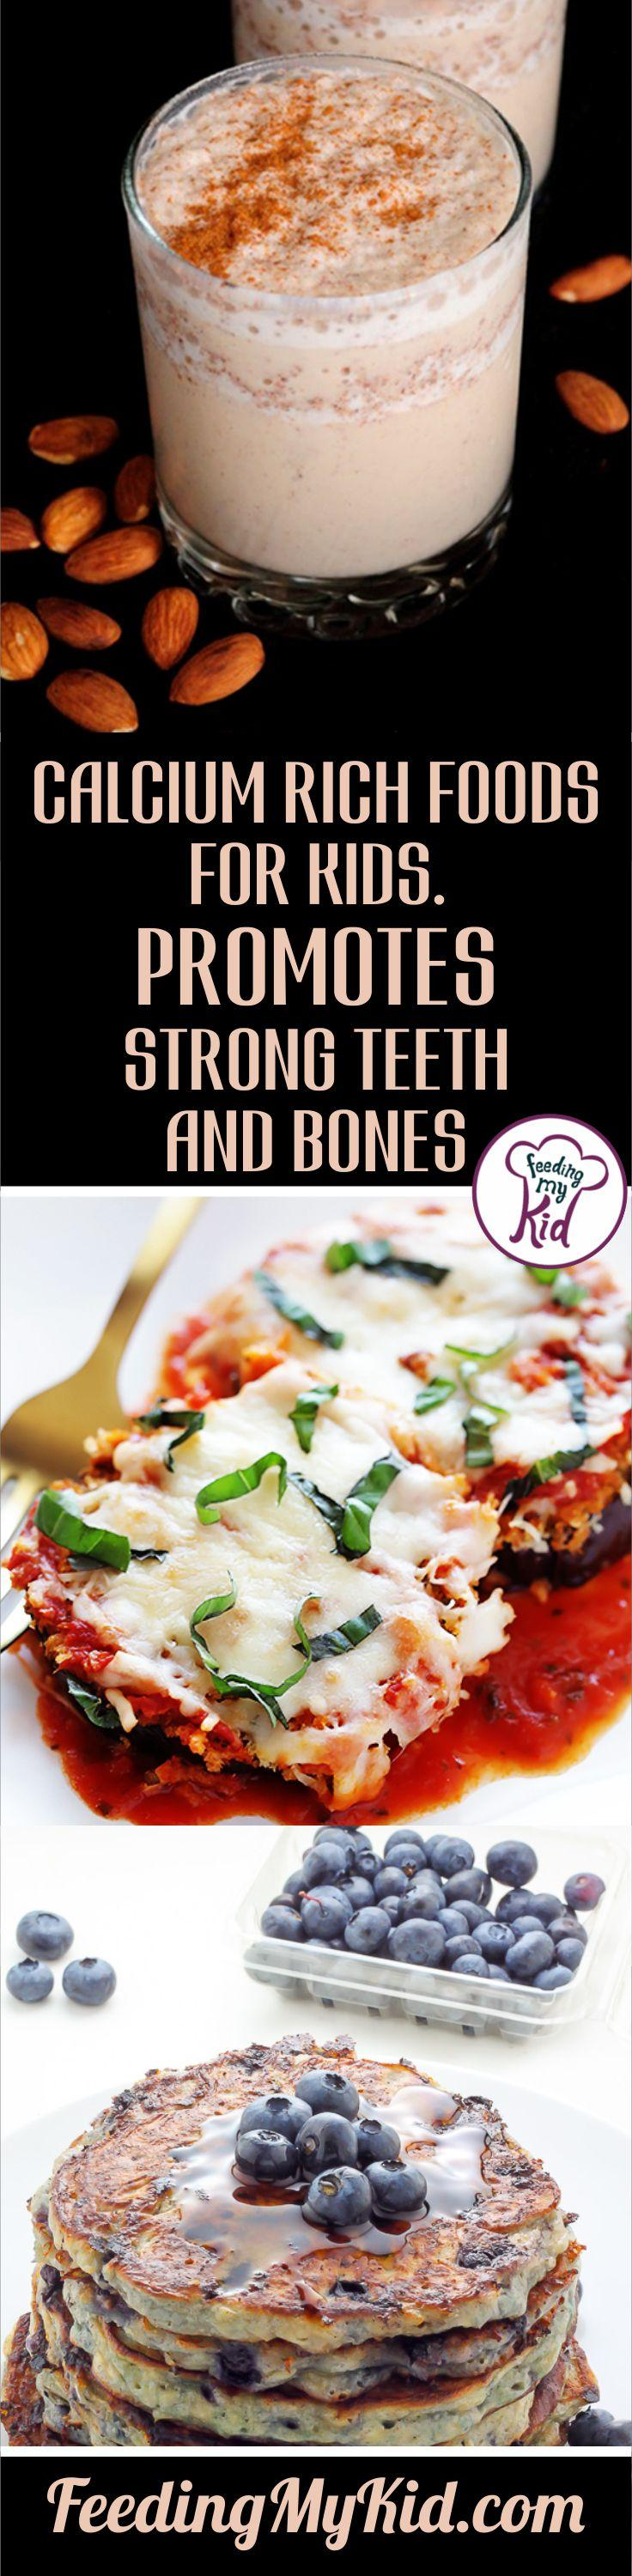 Calcium rich foods help promote strong teeth and bones for your kids! Check out these recipes that are nutrient and calcium rich.